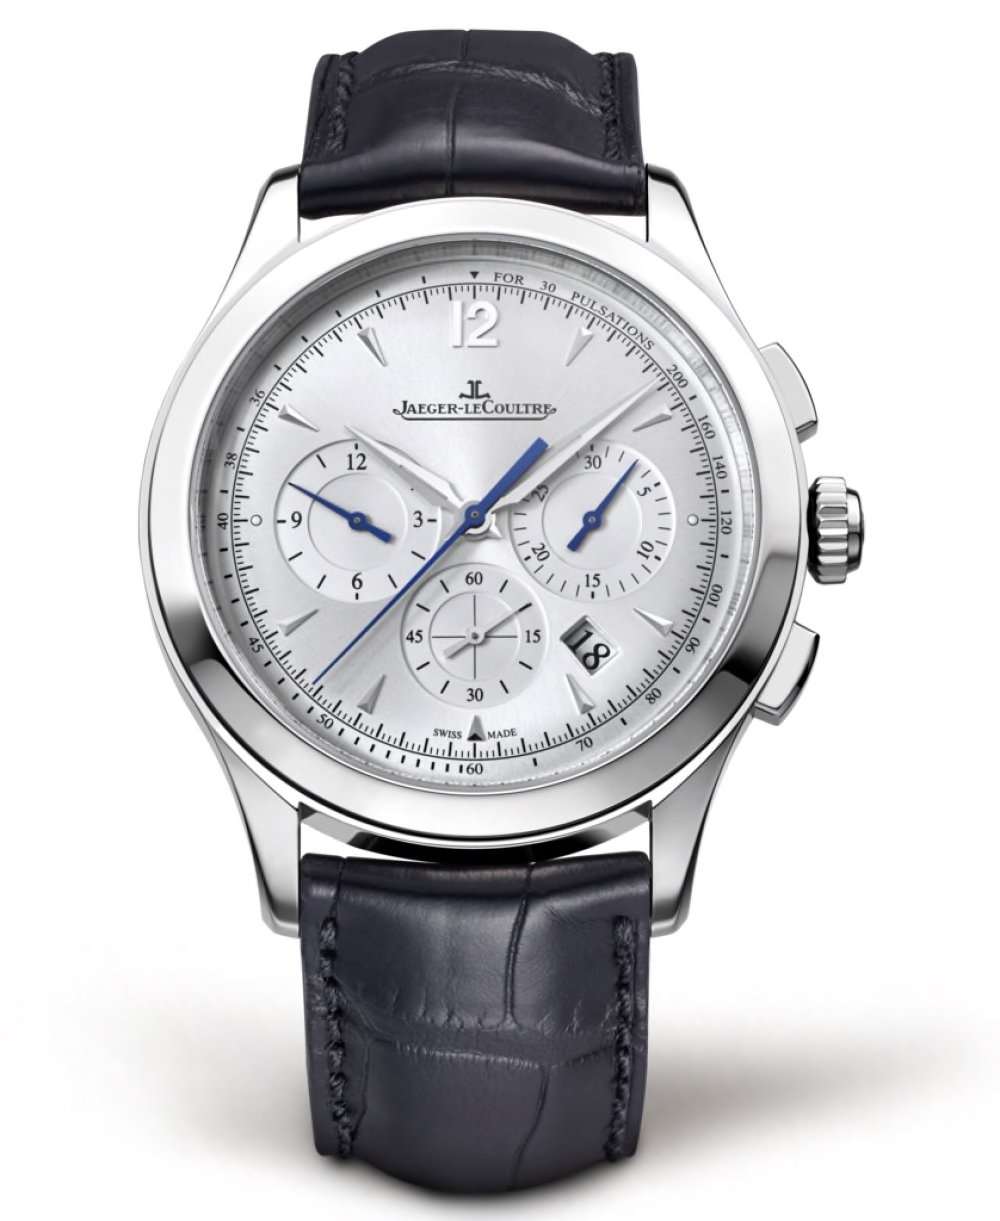 Jaeger-leCoultre-Master-Chronograph-Hall-of-Time-Q1538420